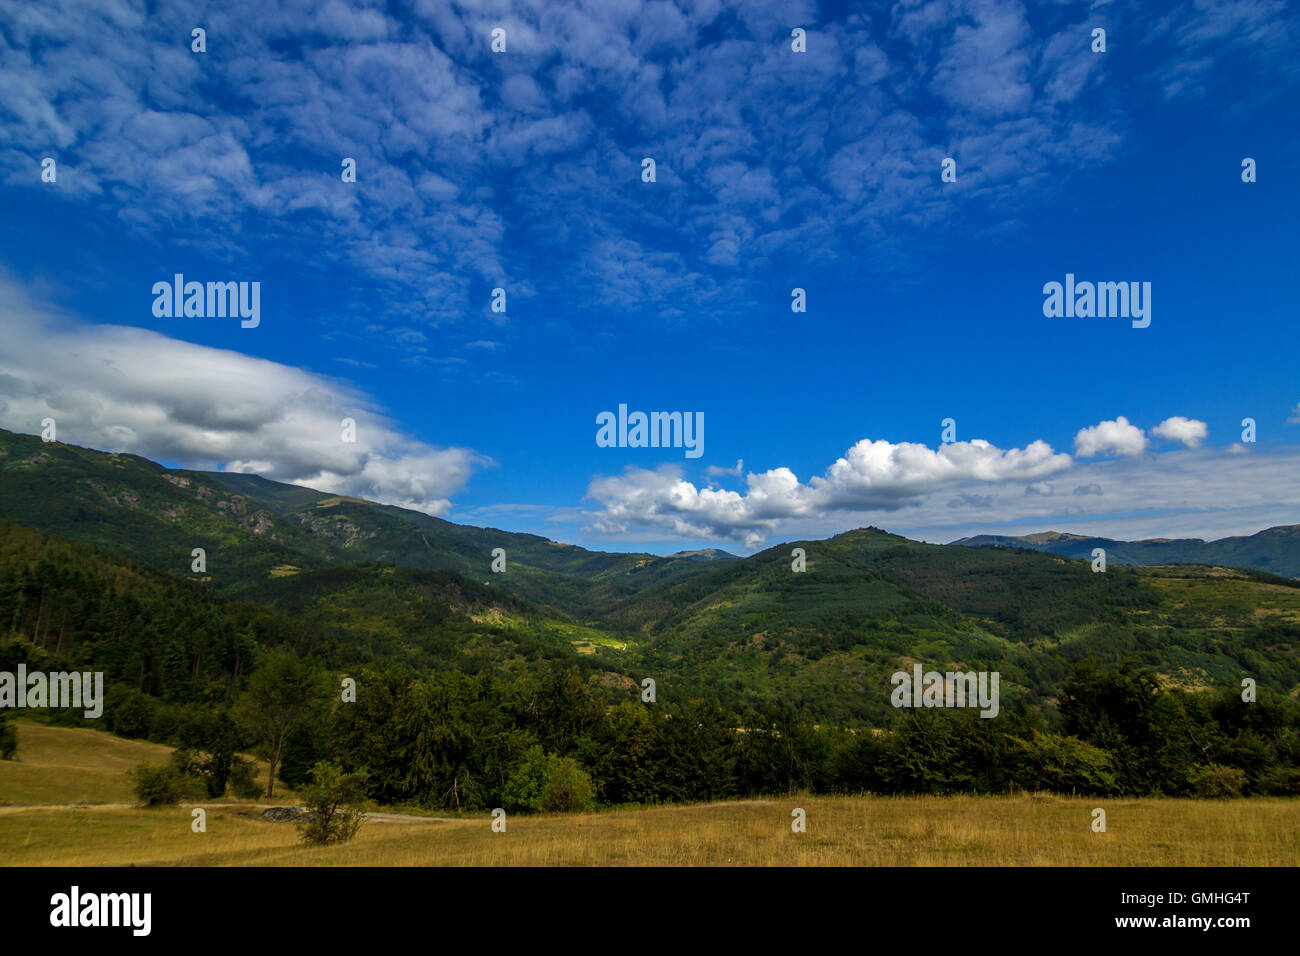 late summer mountain landscape. meadow on hill side with spruce forest under the blue sky with clouds - Stock Image